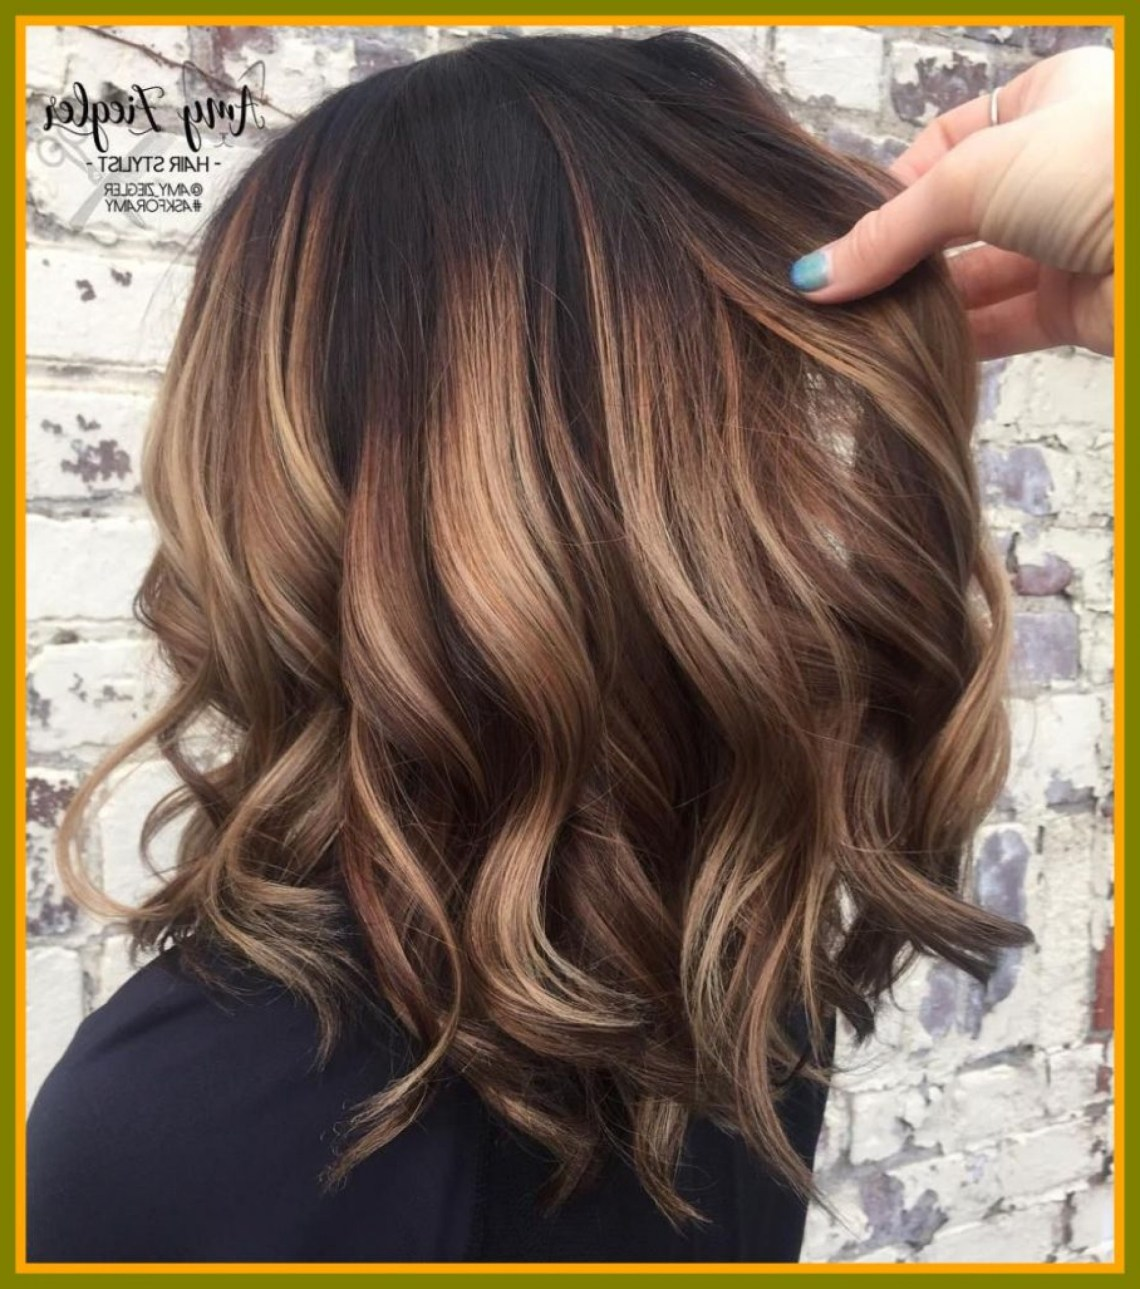 Medium Length Hairstyles With Highlights And Lowlights Medium Length Hairstyles With Lowlights